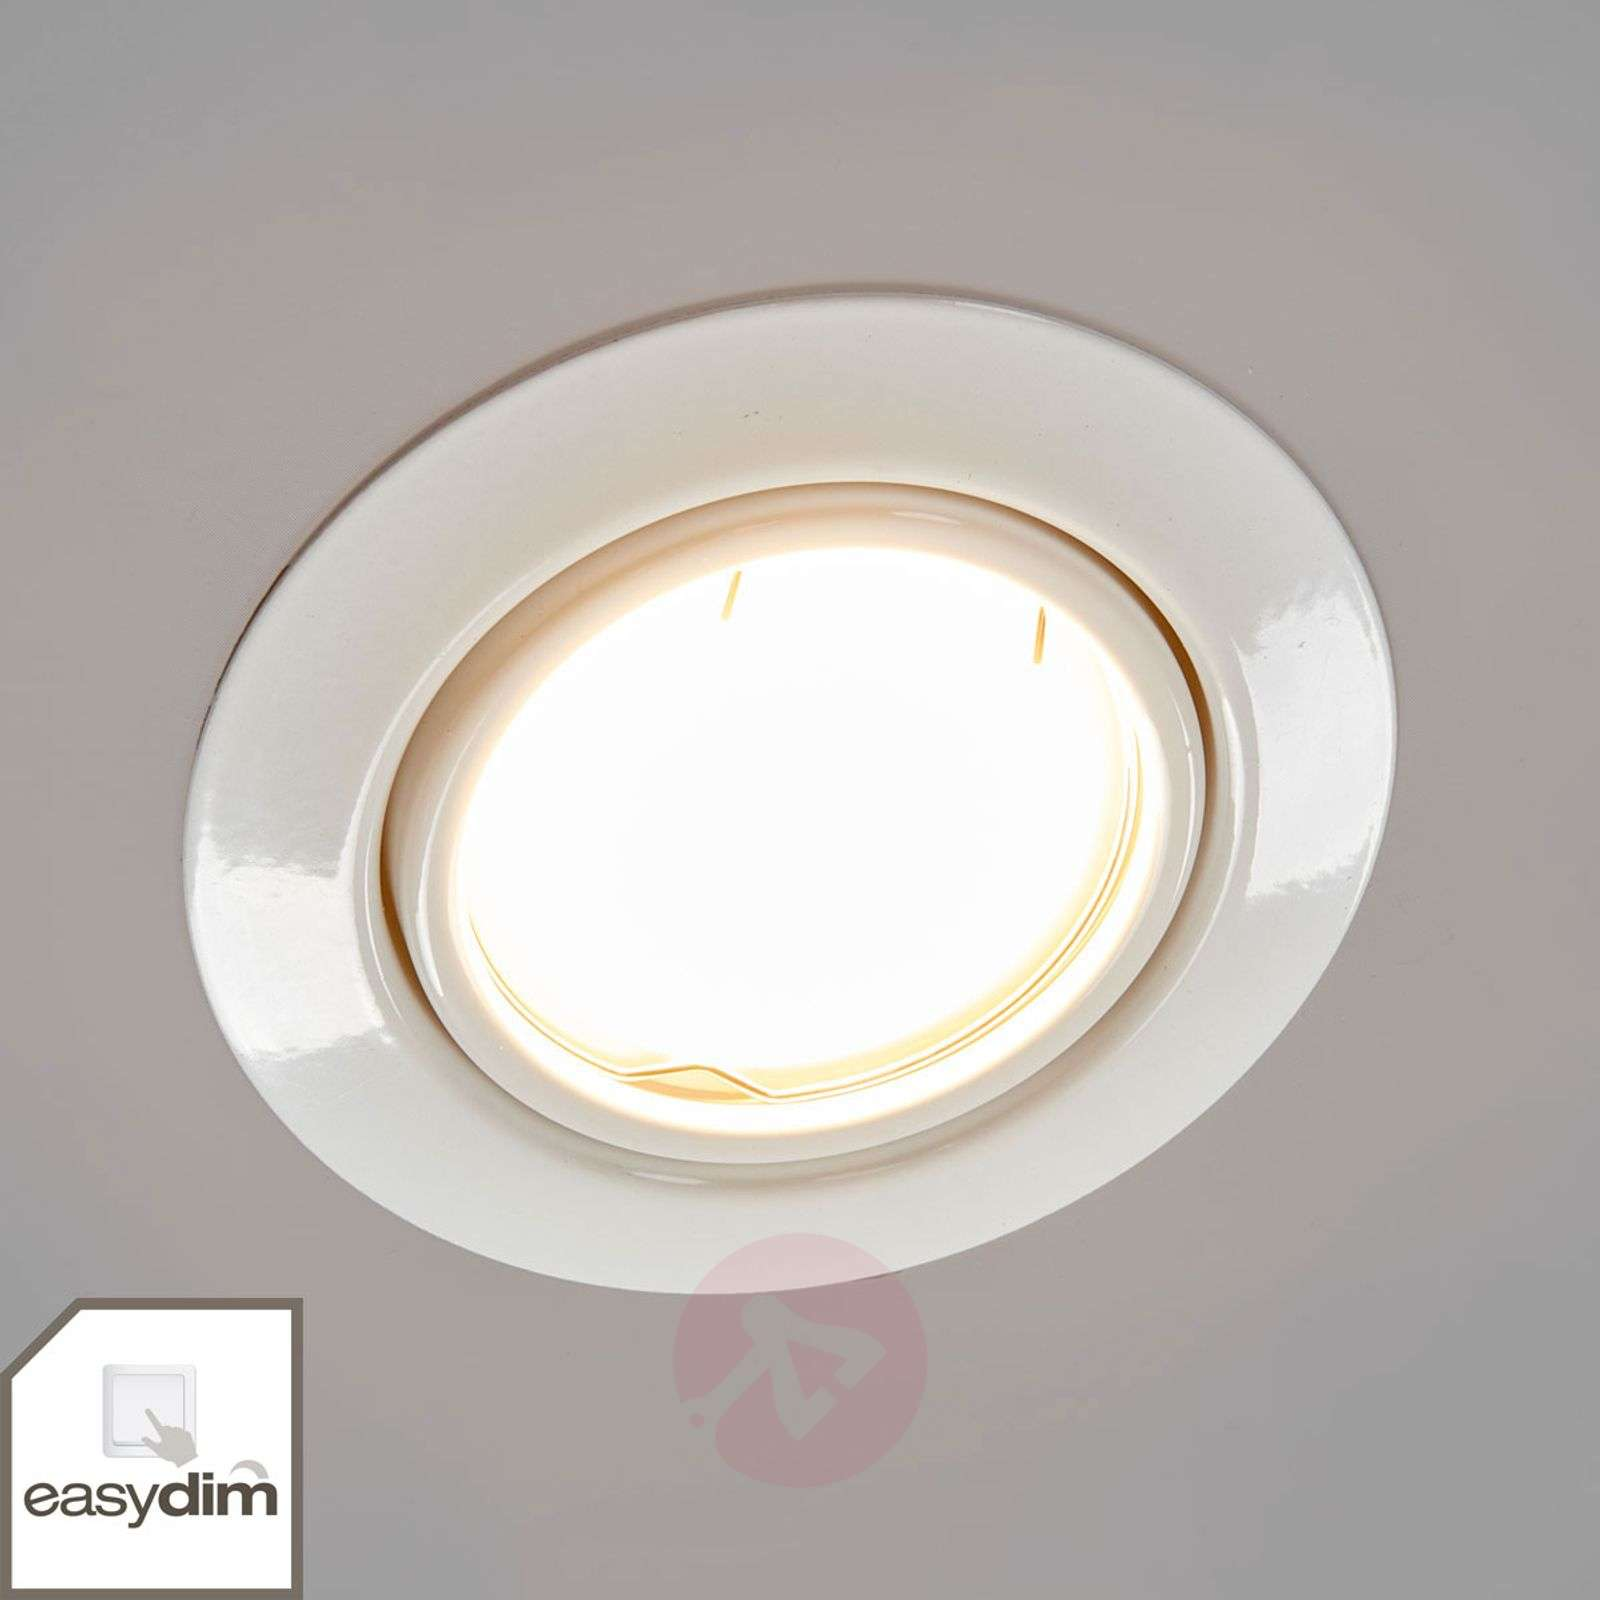 bulb lighting the home lights resort guide can recessed cost design for led